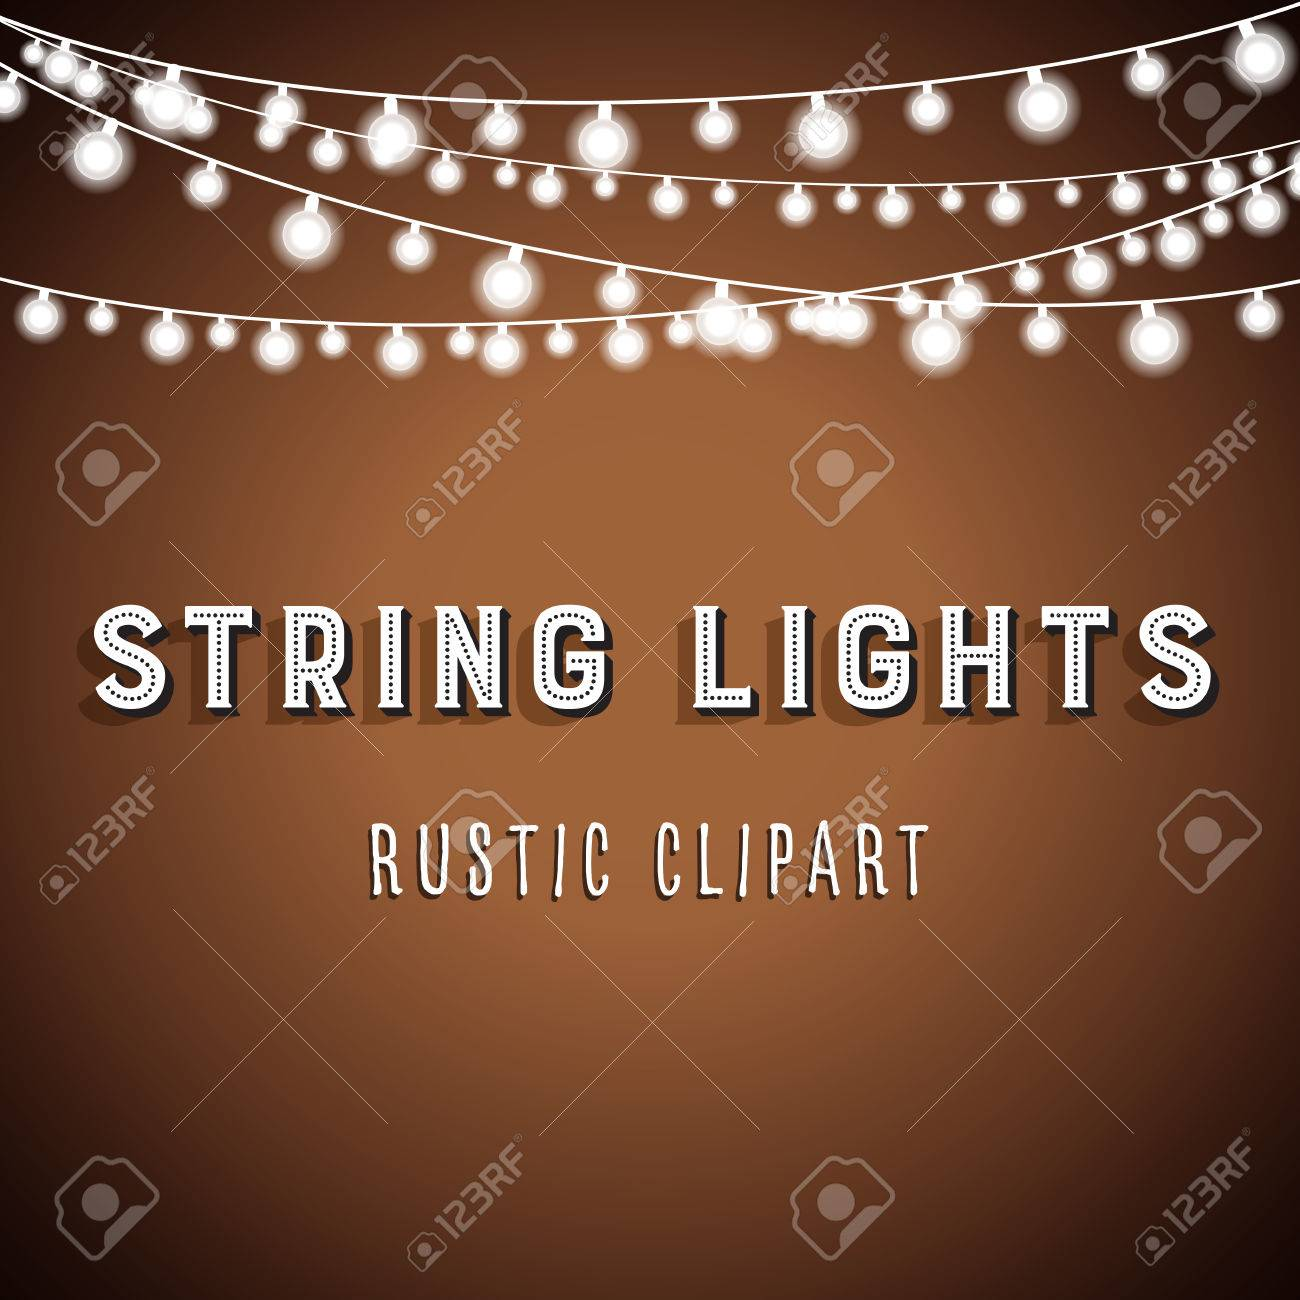 Rustic String Lights Background - Rustic String Lights Vector Clipart 10 - 64751674